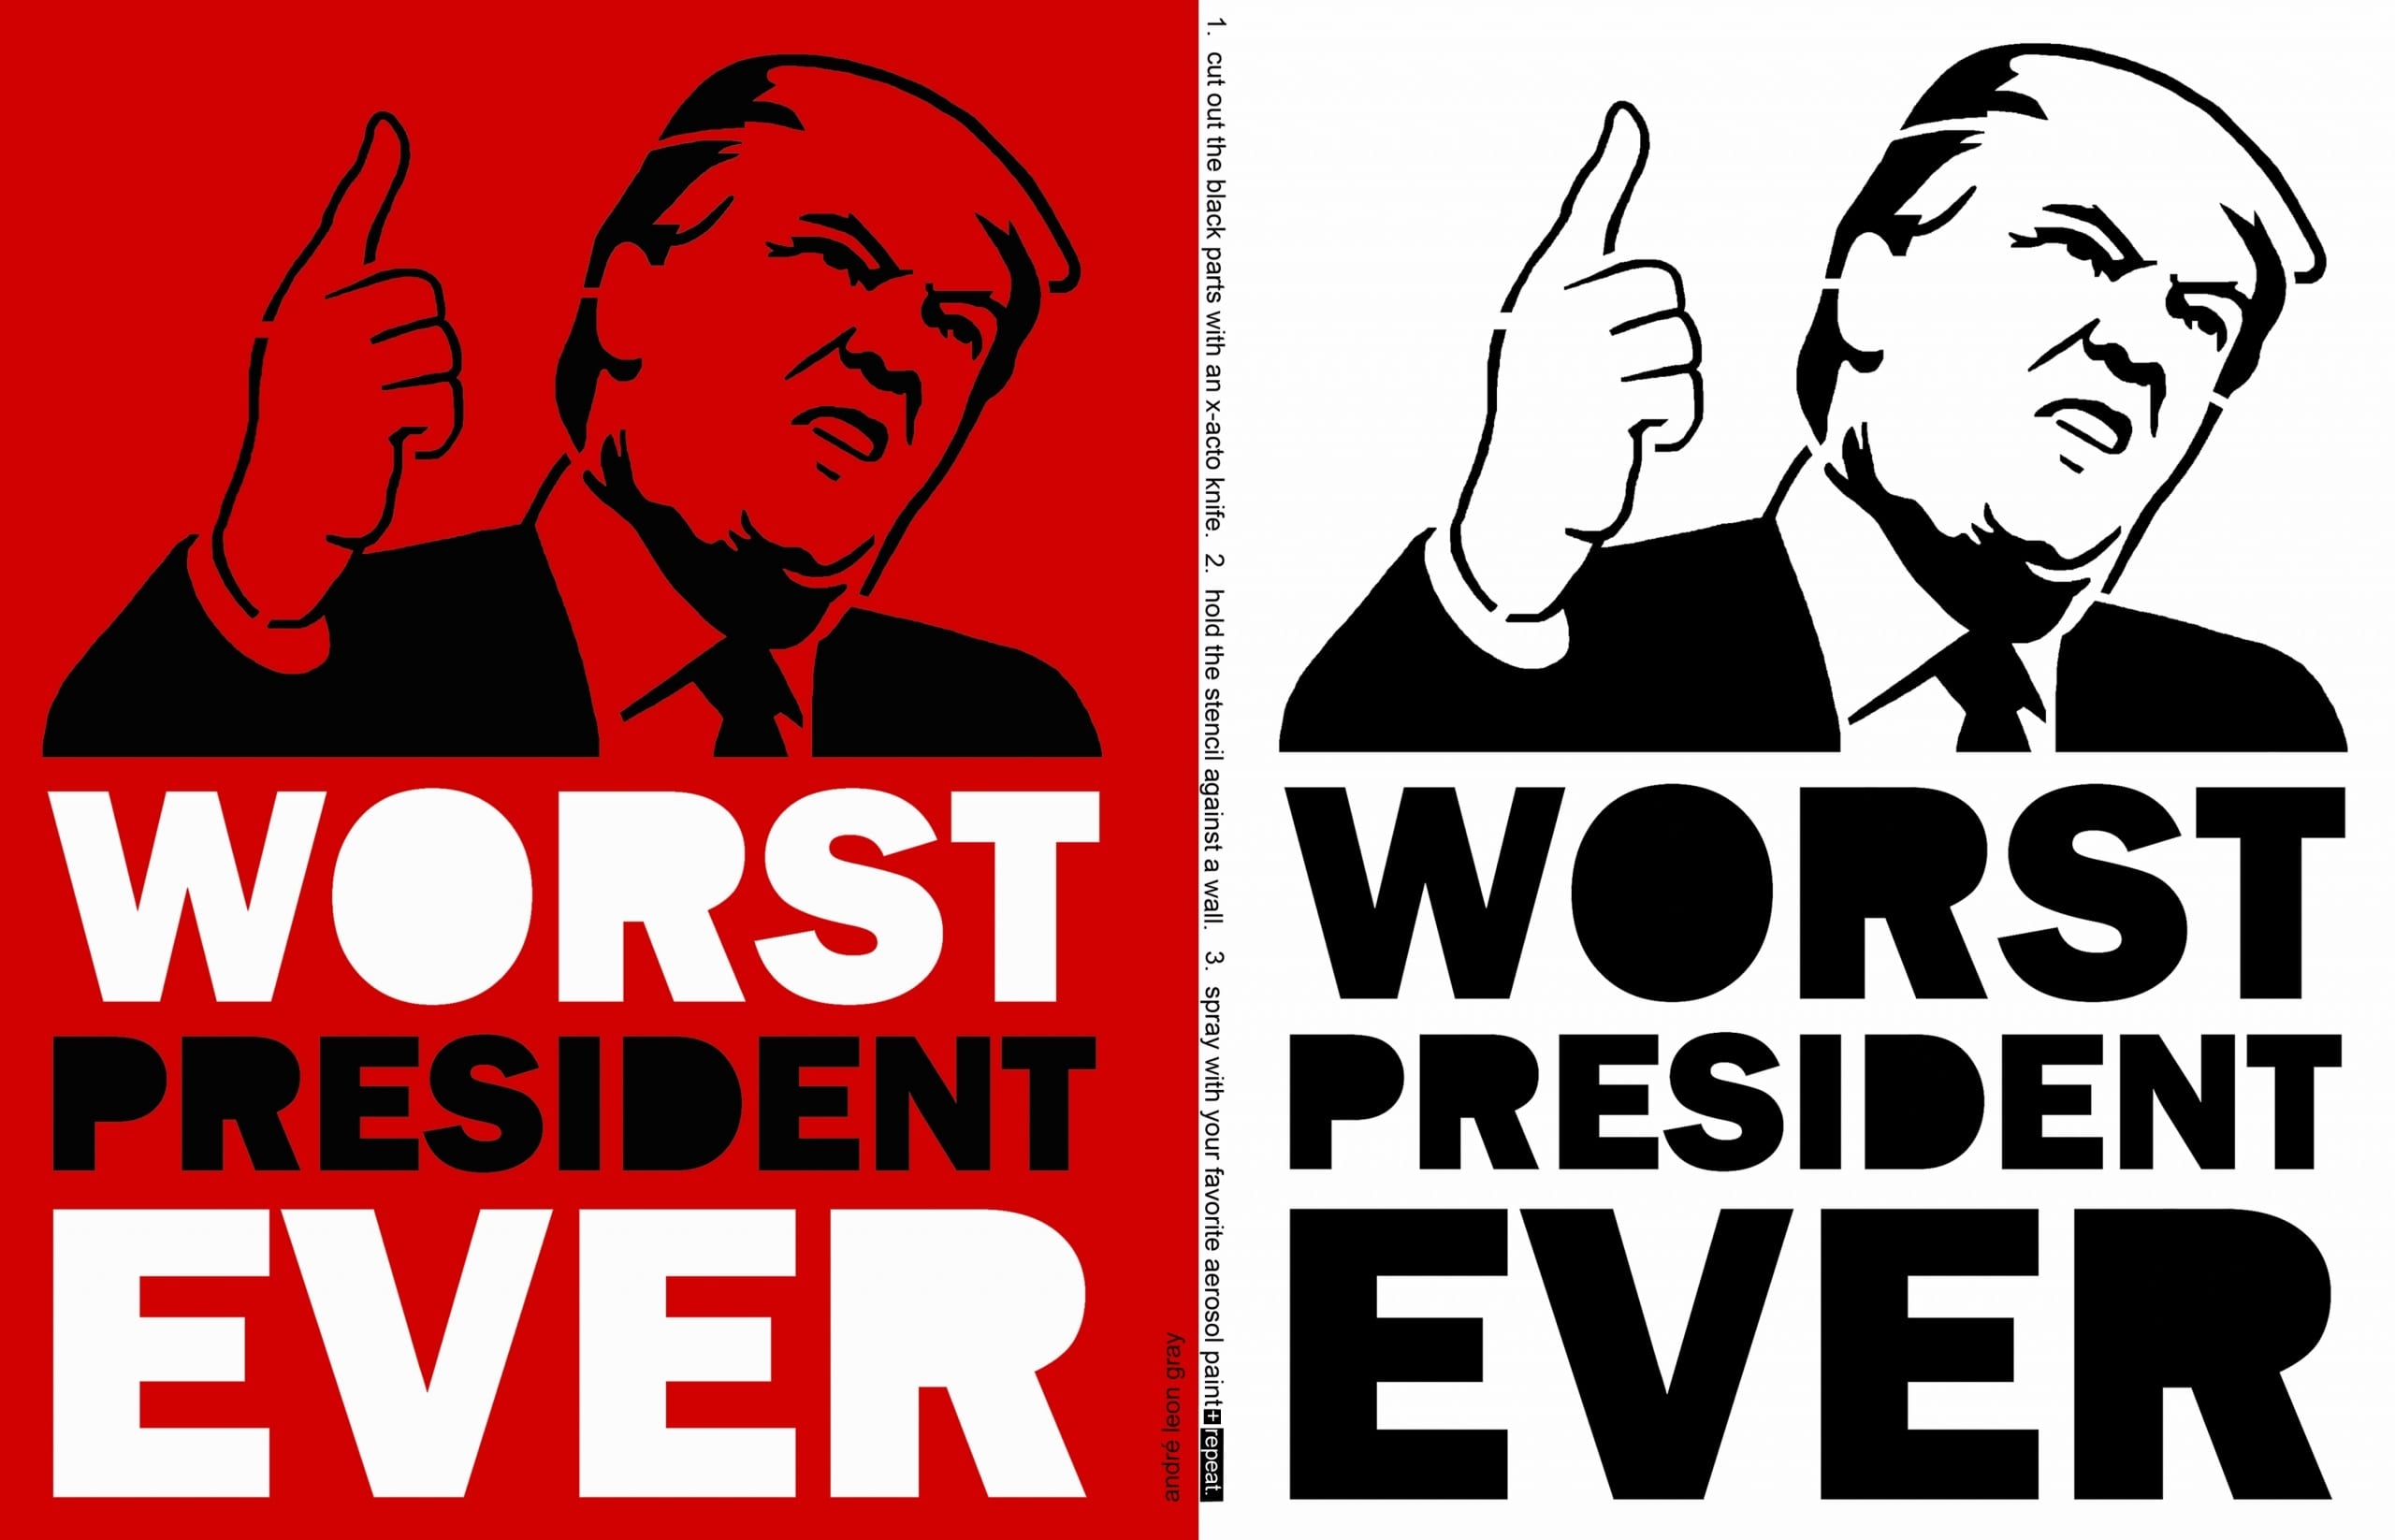 """Twice-repeating stenciled graphic illustration of Donald Trump from shoulders up, pointing his right index finger in the air while pursing his mouth and looking out top right corner of the image, with the phrase """"Worst President Ever"""" in all-caps bold letters"""